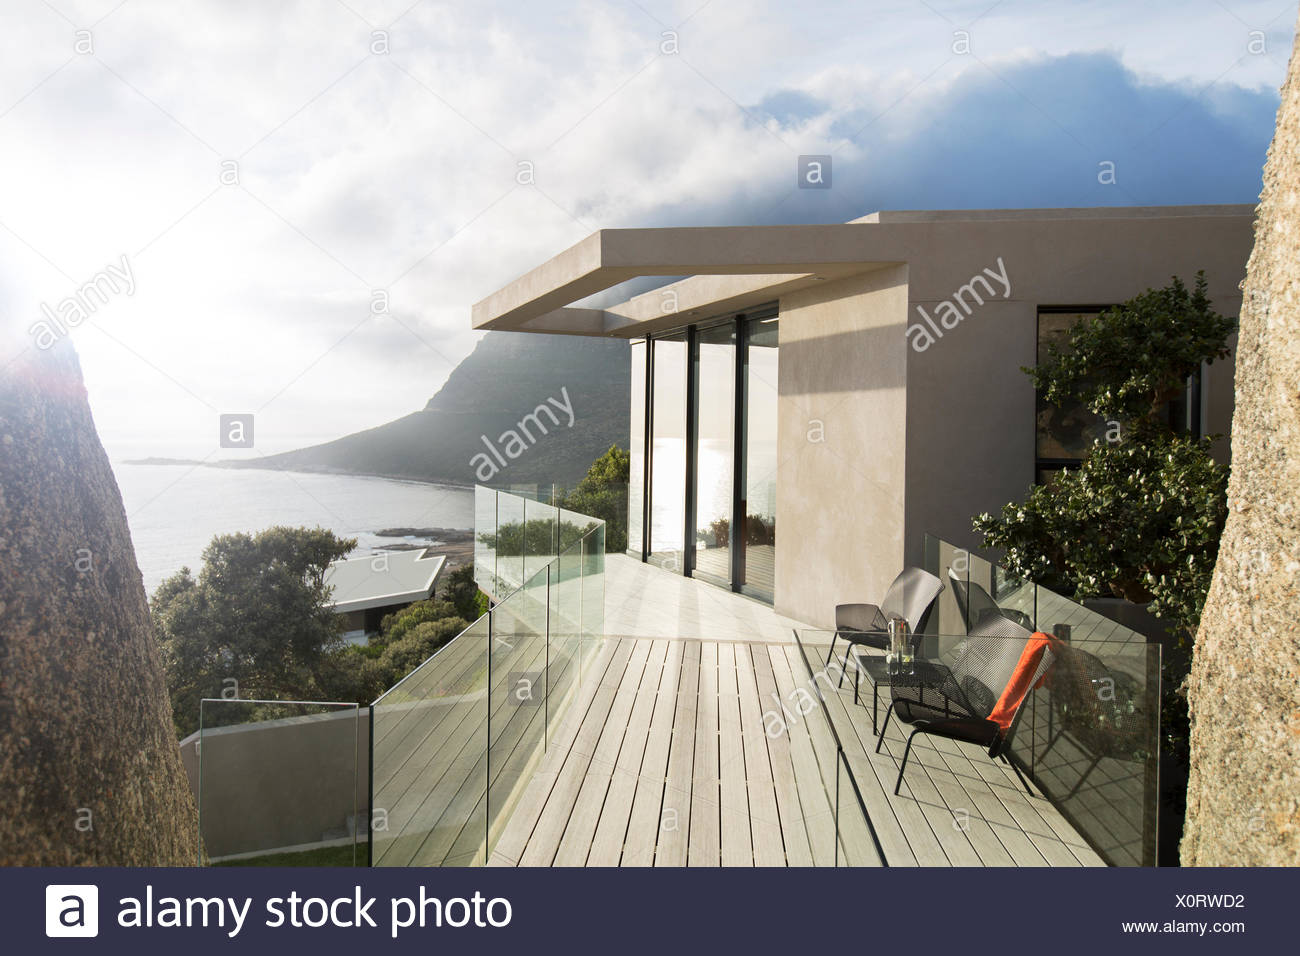 Wooden balcony of modern house - Stock Image